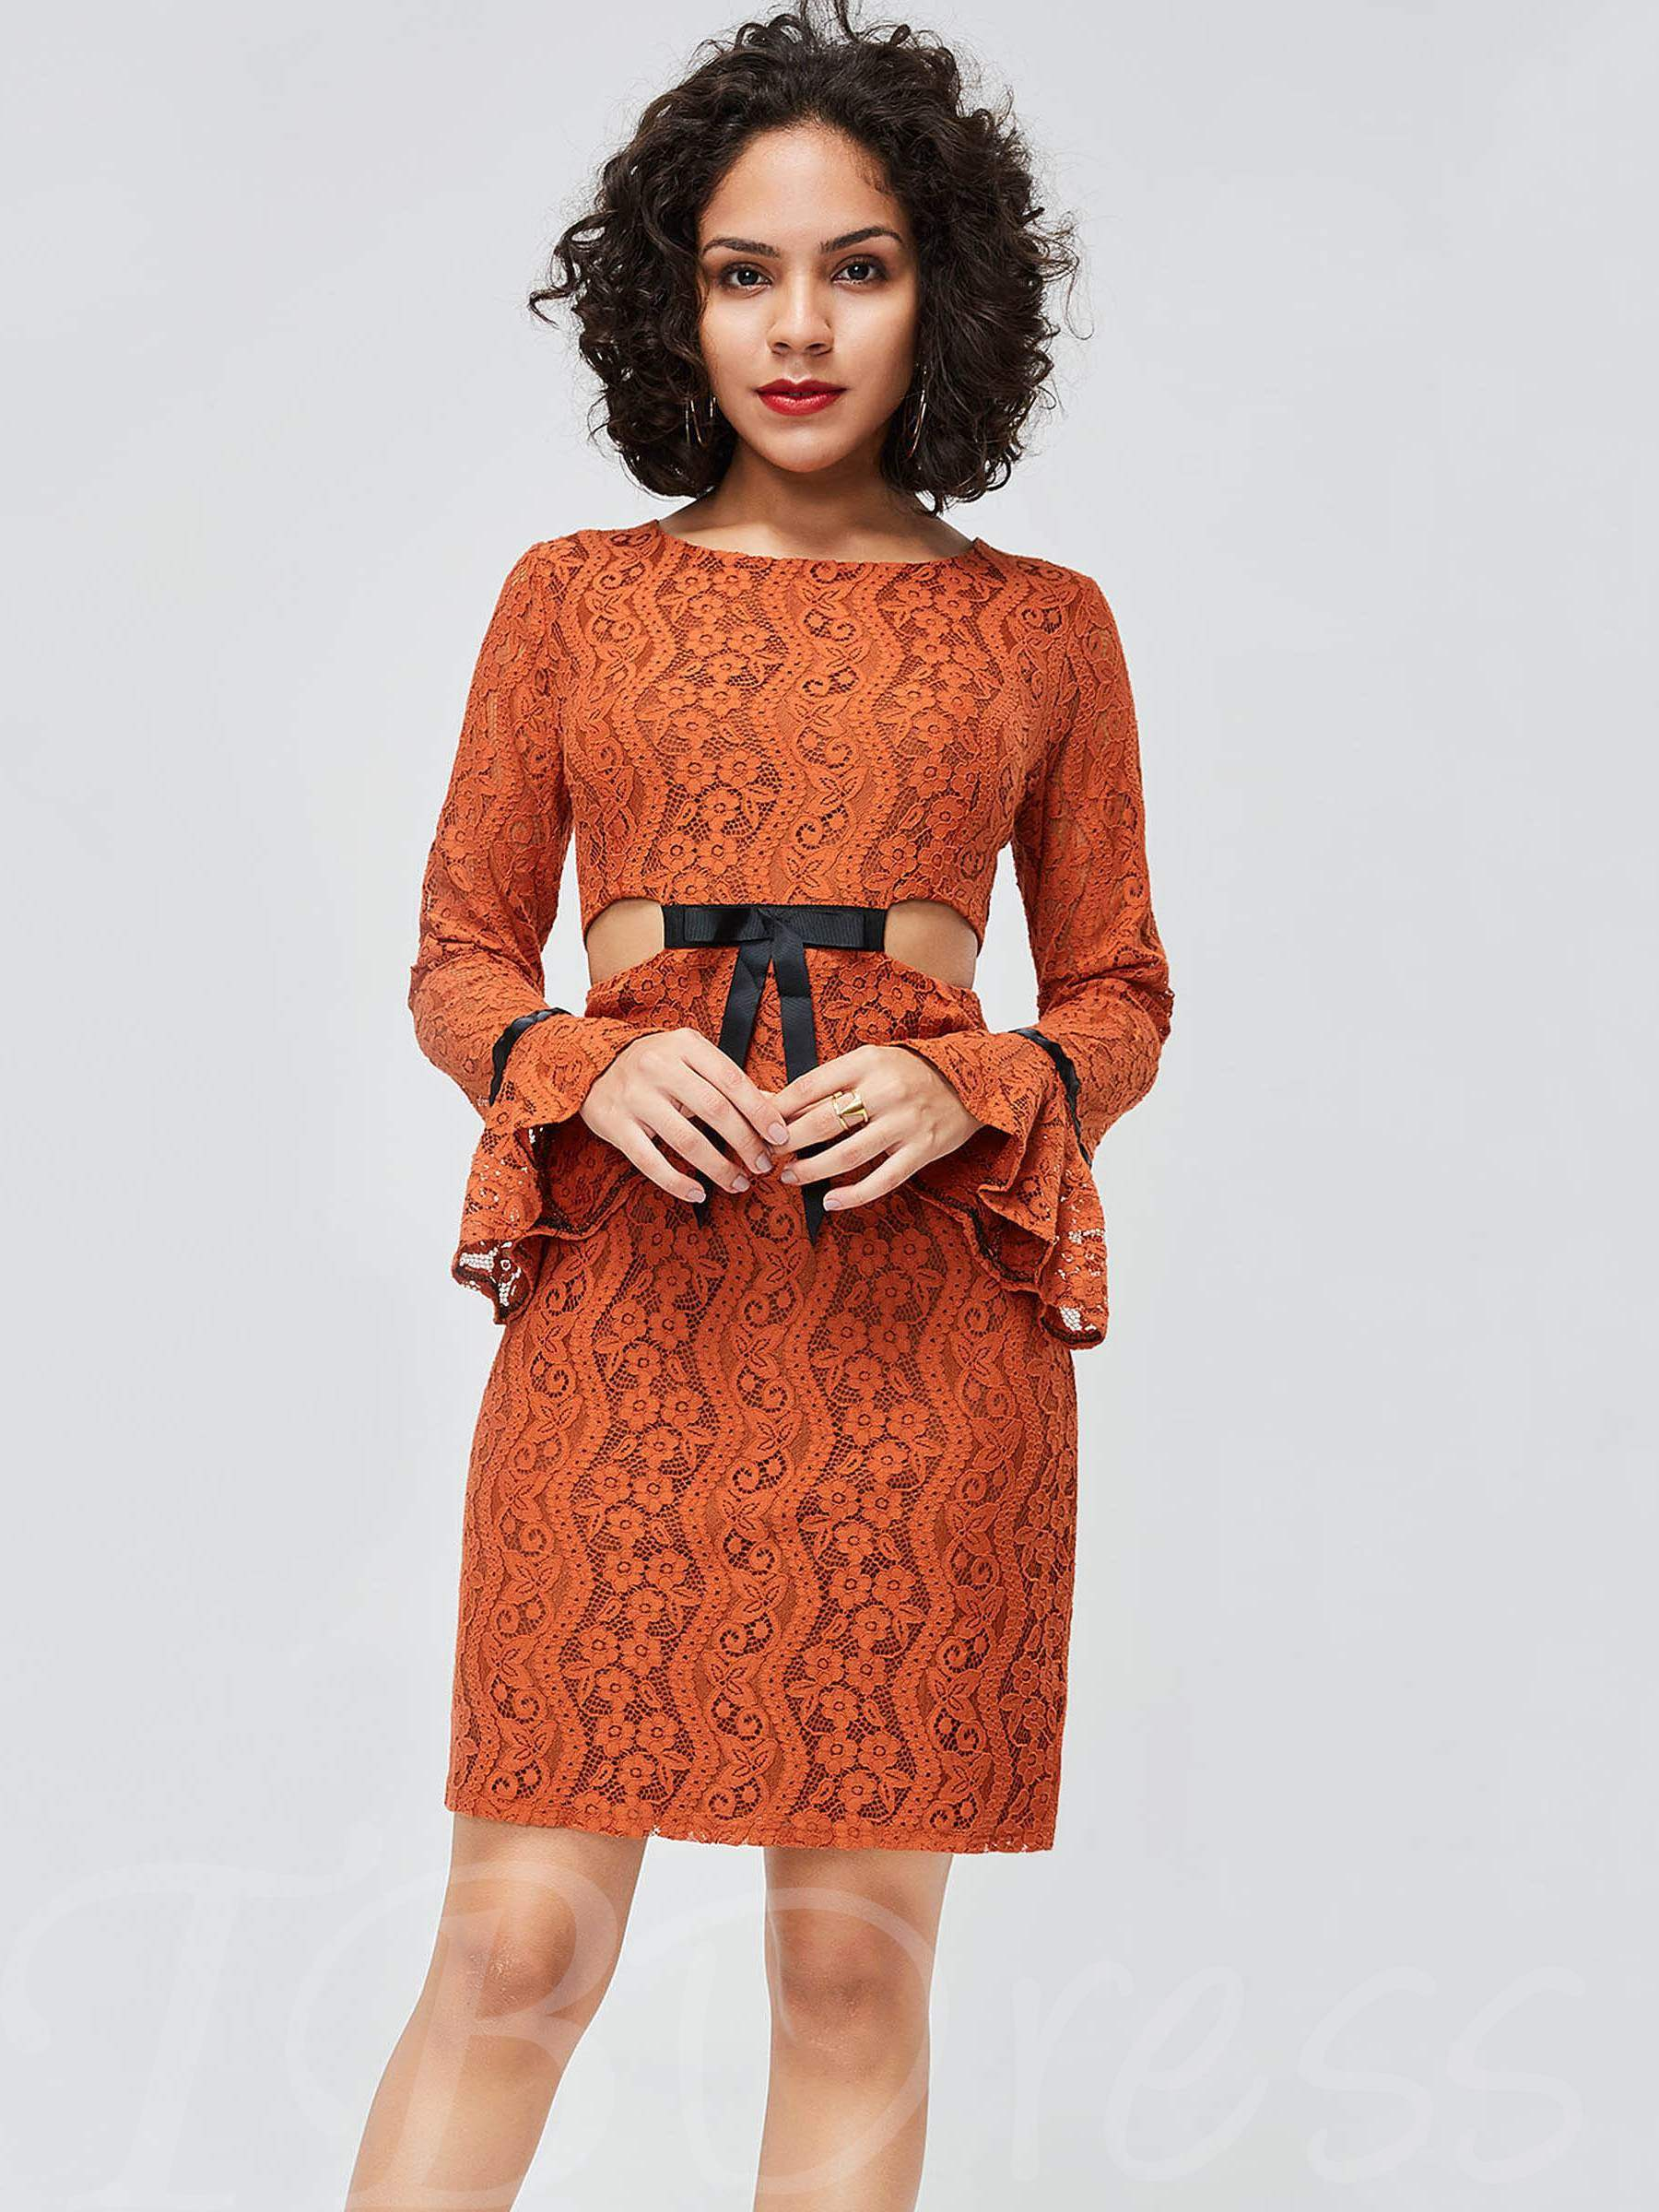 Buy Flare Sleeve Round Neck Lace Dress, Spring,Fall,Winter, 13369672 for $19.60 in TBDress store